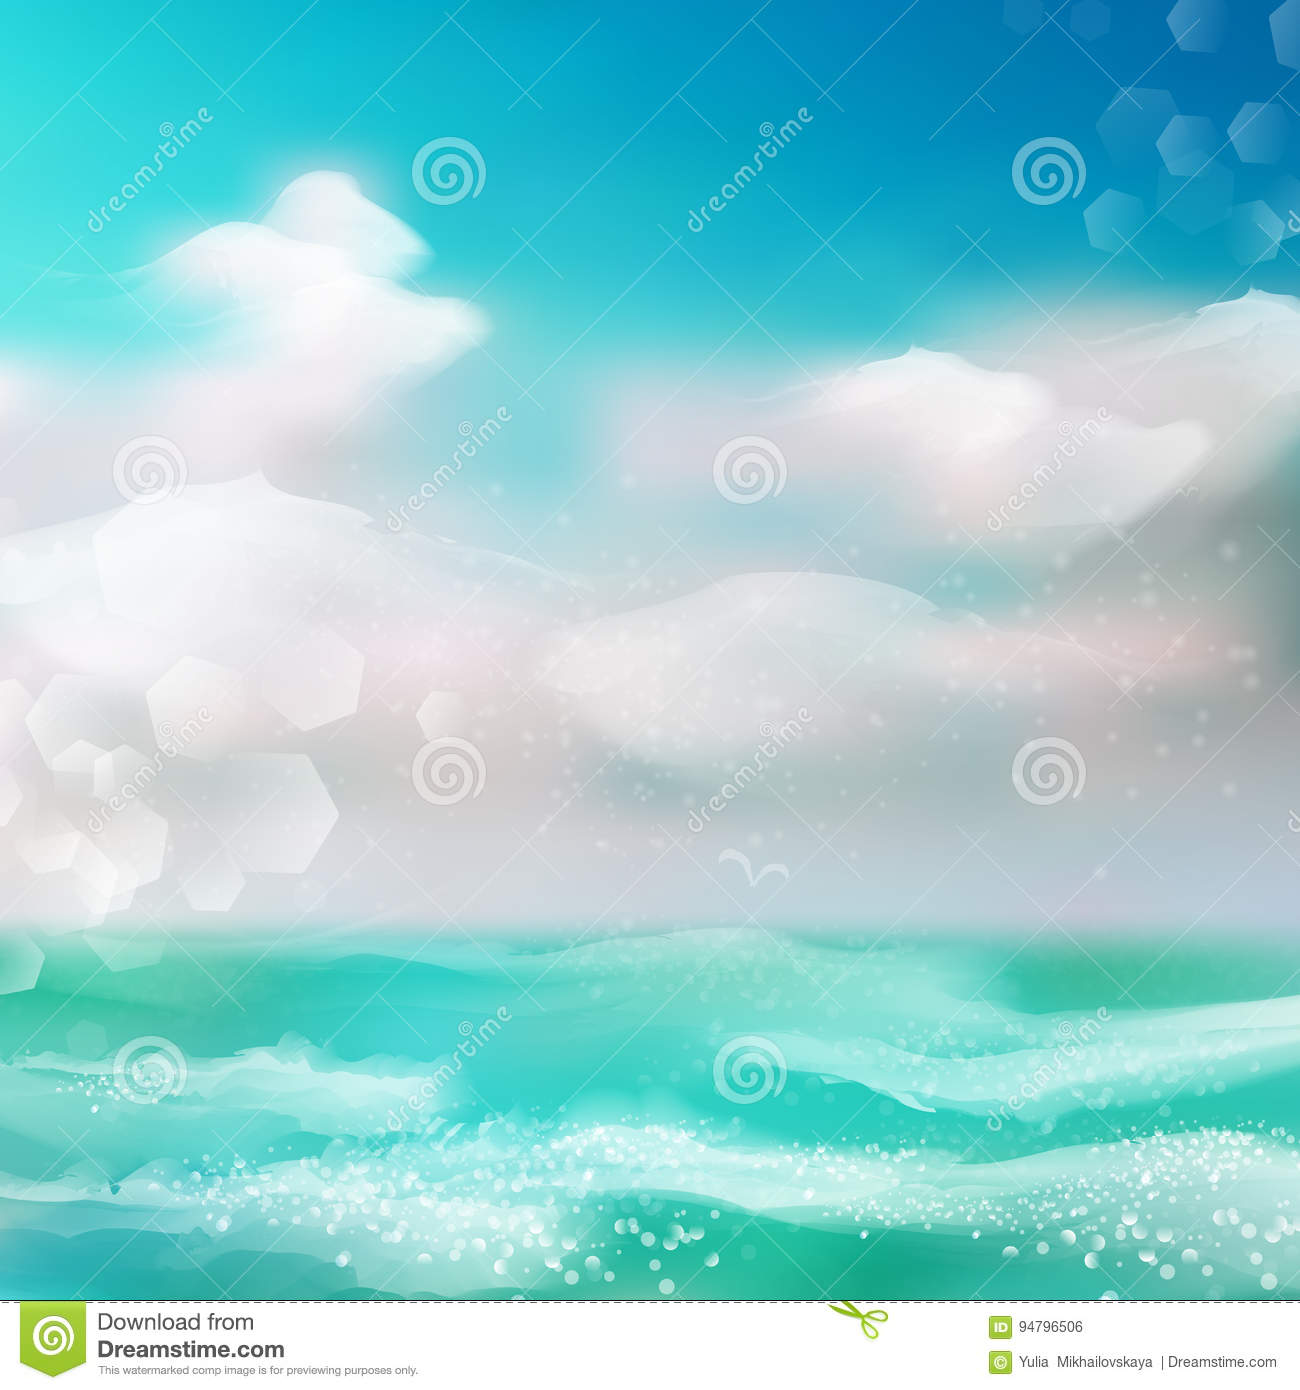 Background Of Blurred Beach And Sea Waves With Bokeh: Spring And Summer Watercolor Ocean Background With Shining